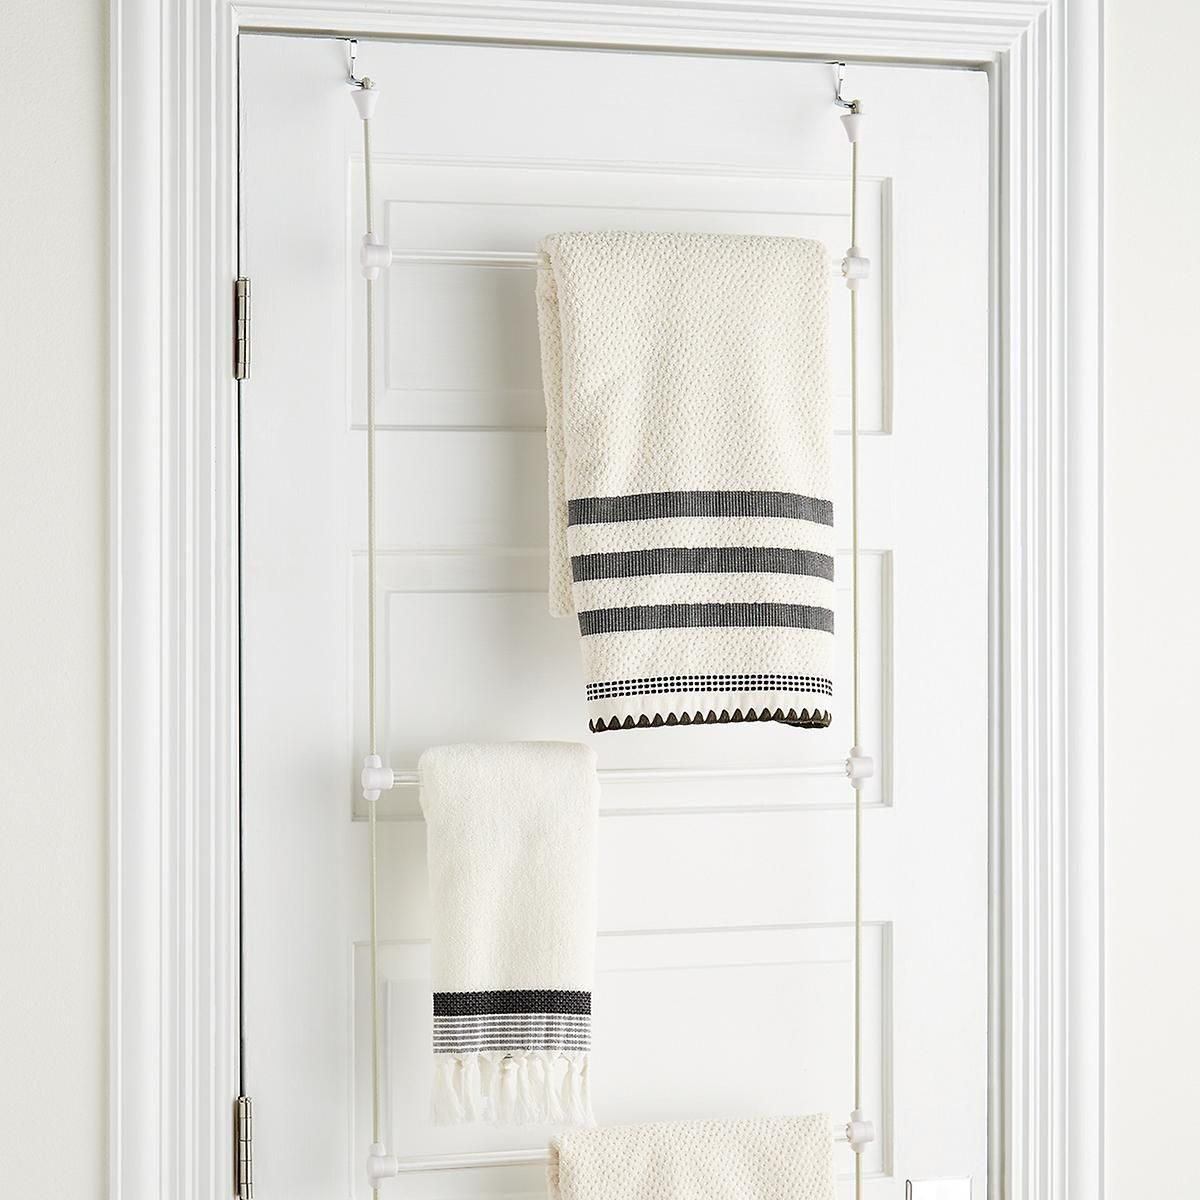 17 Bathroom Storage and Organization Ideas - How to Organize Your ...